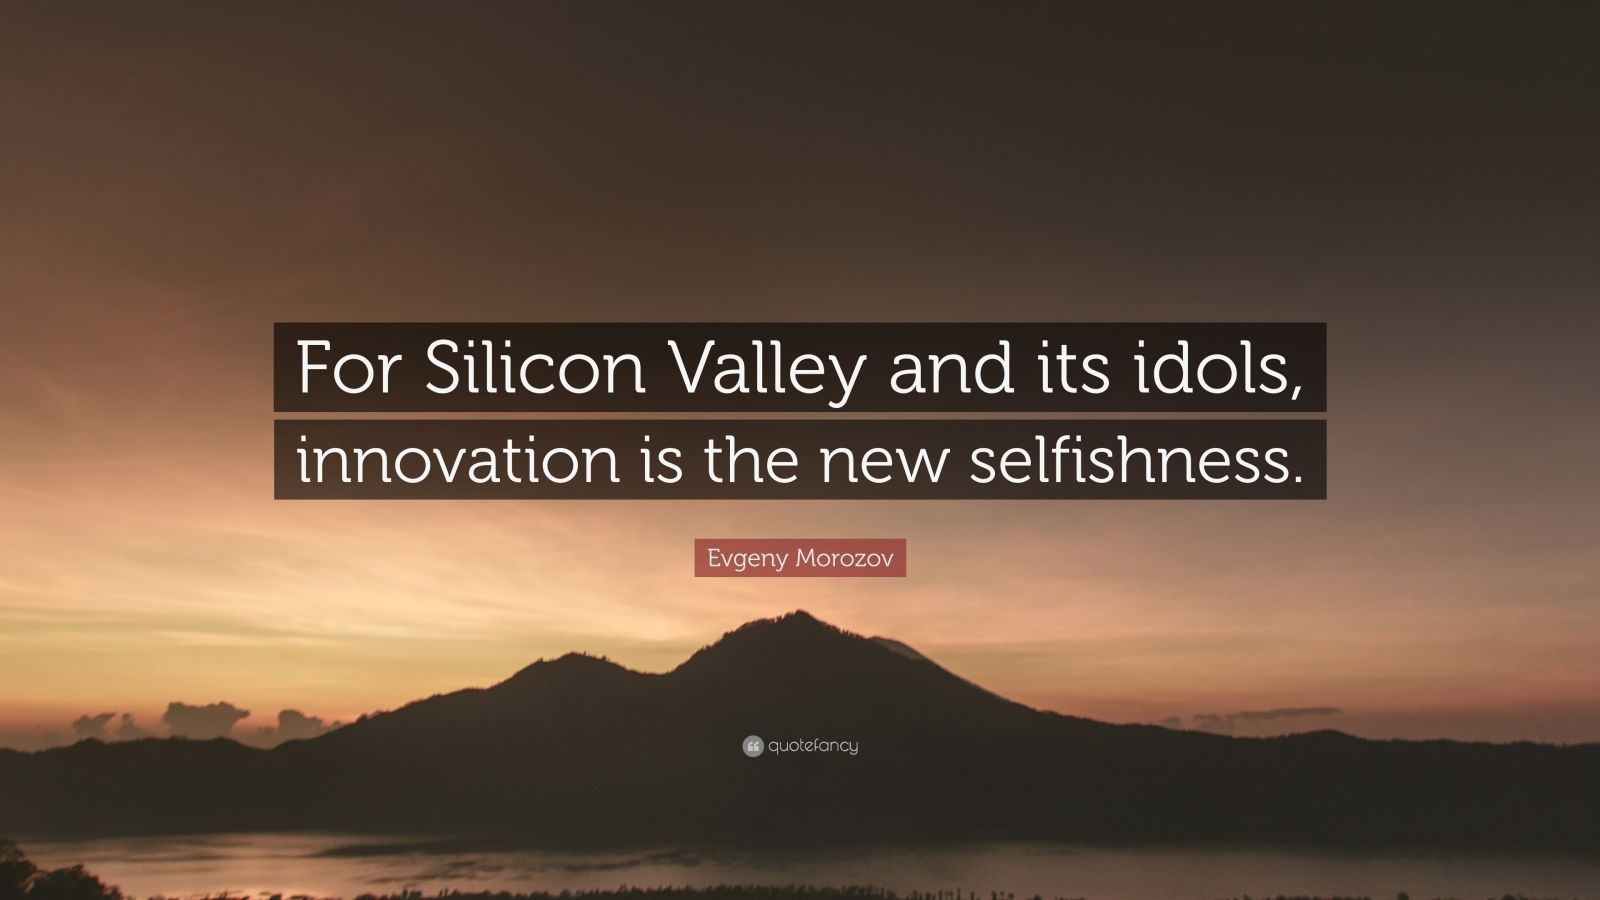 Evgeny Morozov Quote For Silicon Valley And Its Idols Innovation